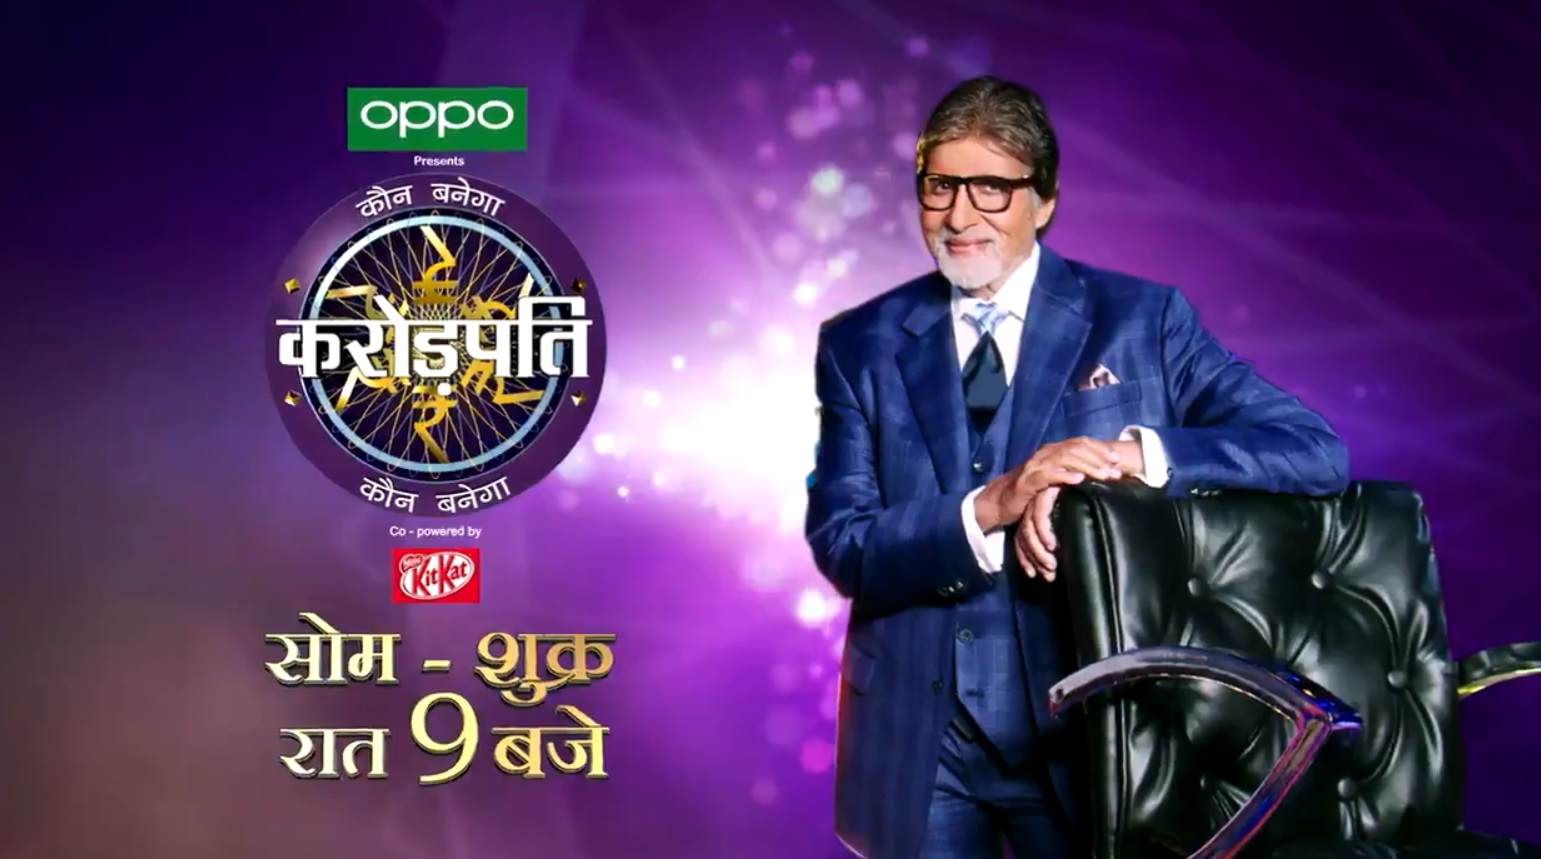 KBC Show Special Episode from Monday to Friday